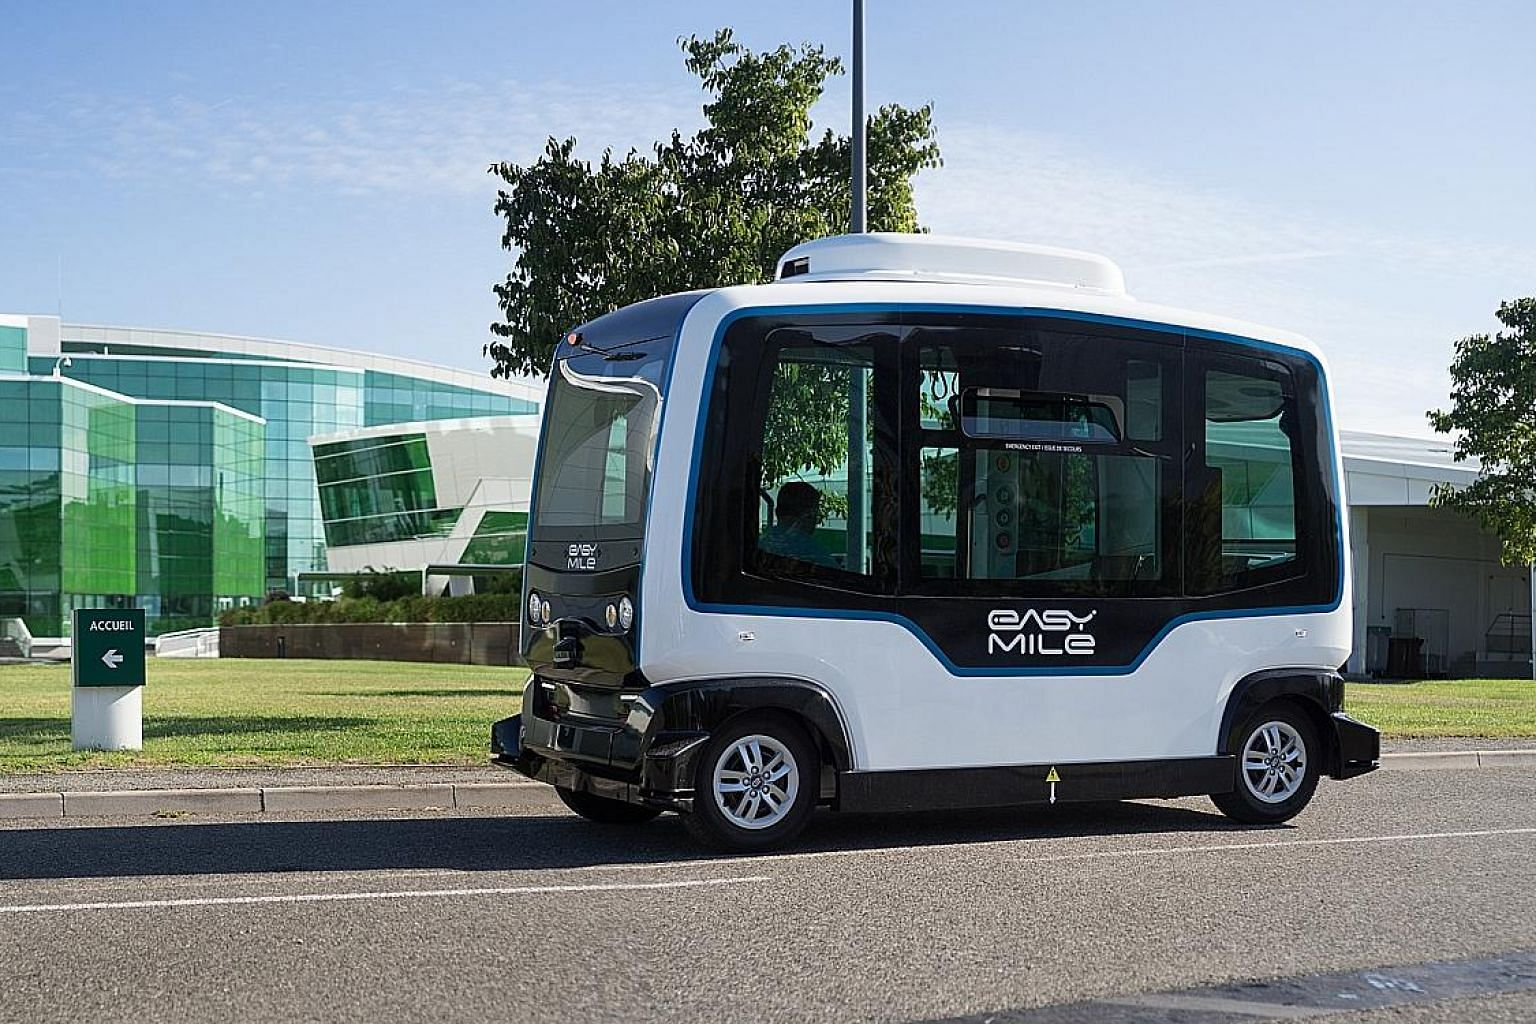 French start-up EasyMile's EZ10 autonomous shuttle will ply a 1.6km route on the National University of Singapore campus from next March as part of a year-long trial with ComfortDelGro and automotive distributor Inchcape.